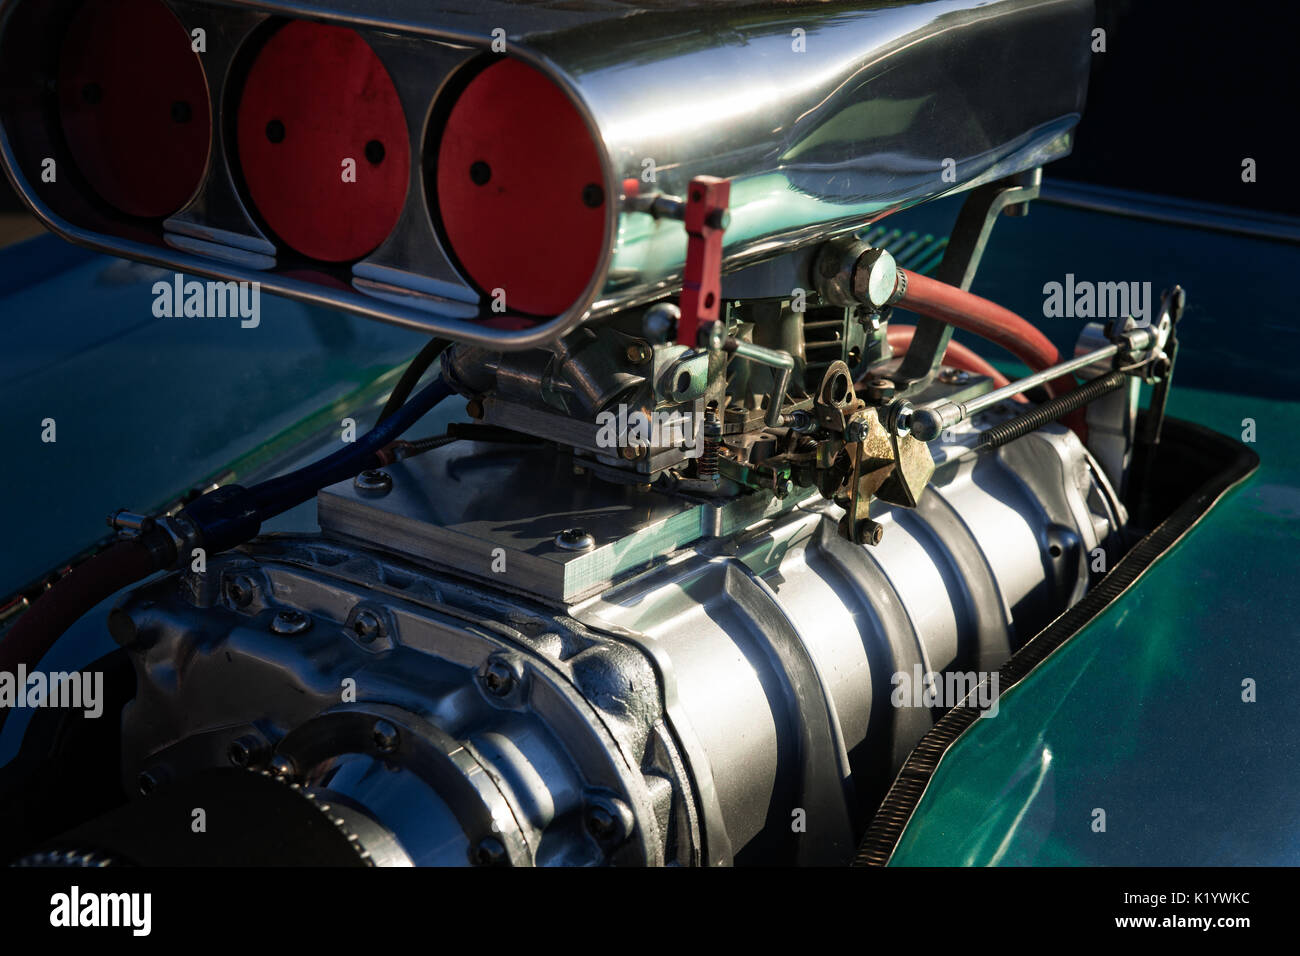 Powerful engine of a hot rod or dragster speed racing car. Metal ...